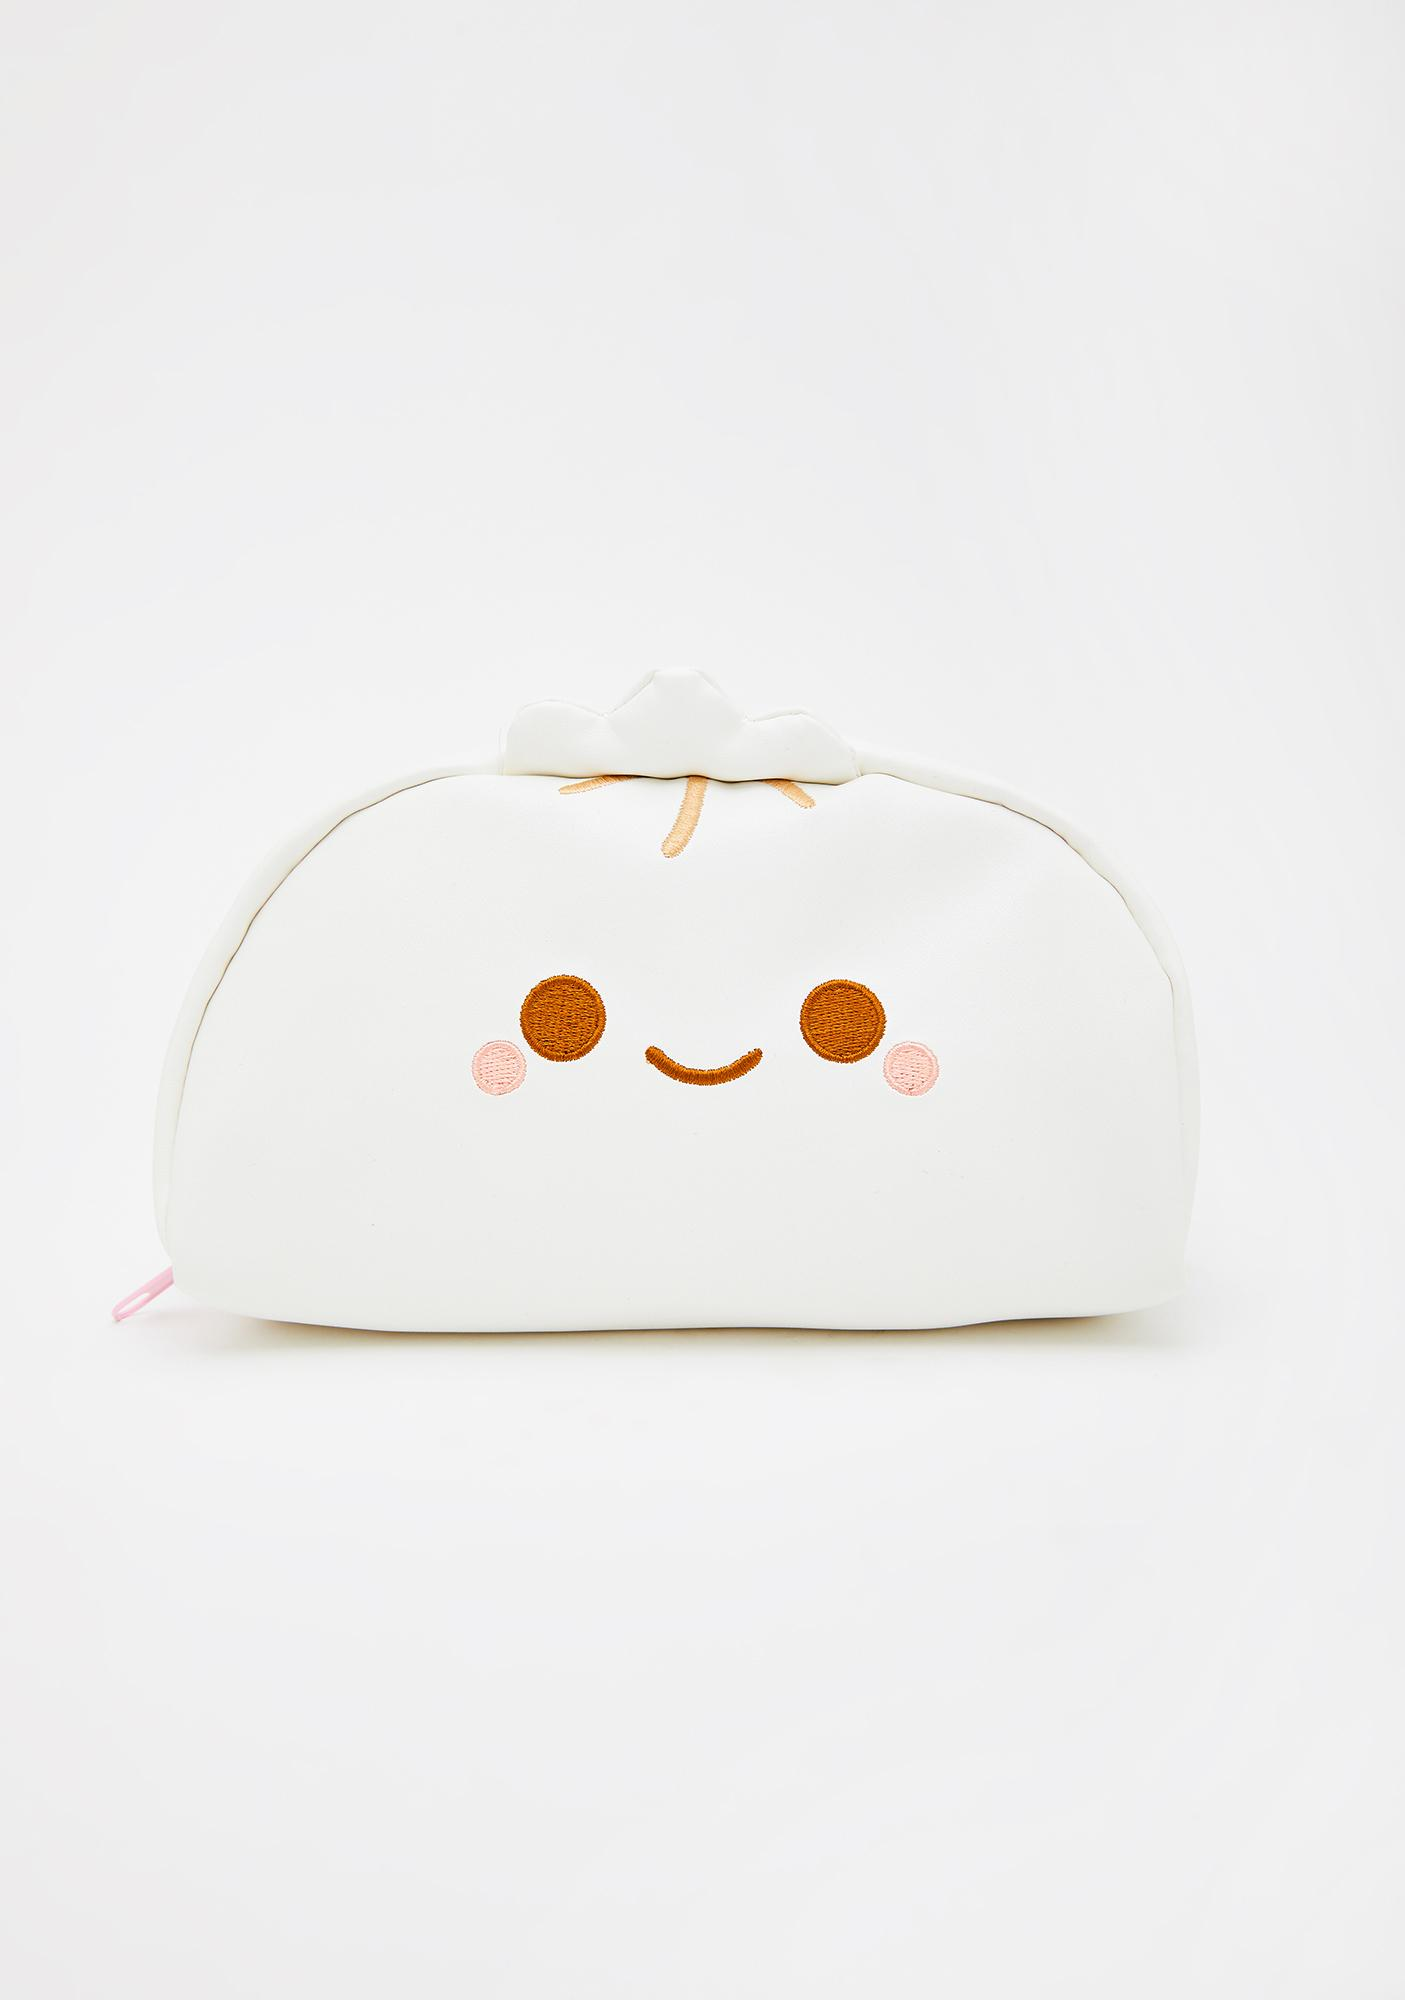 Smoko Little B Dumpling Round Pencil Case